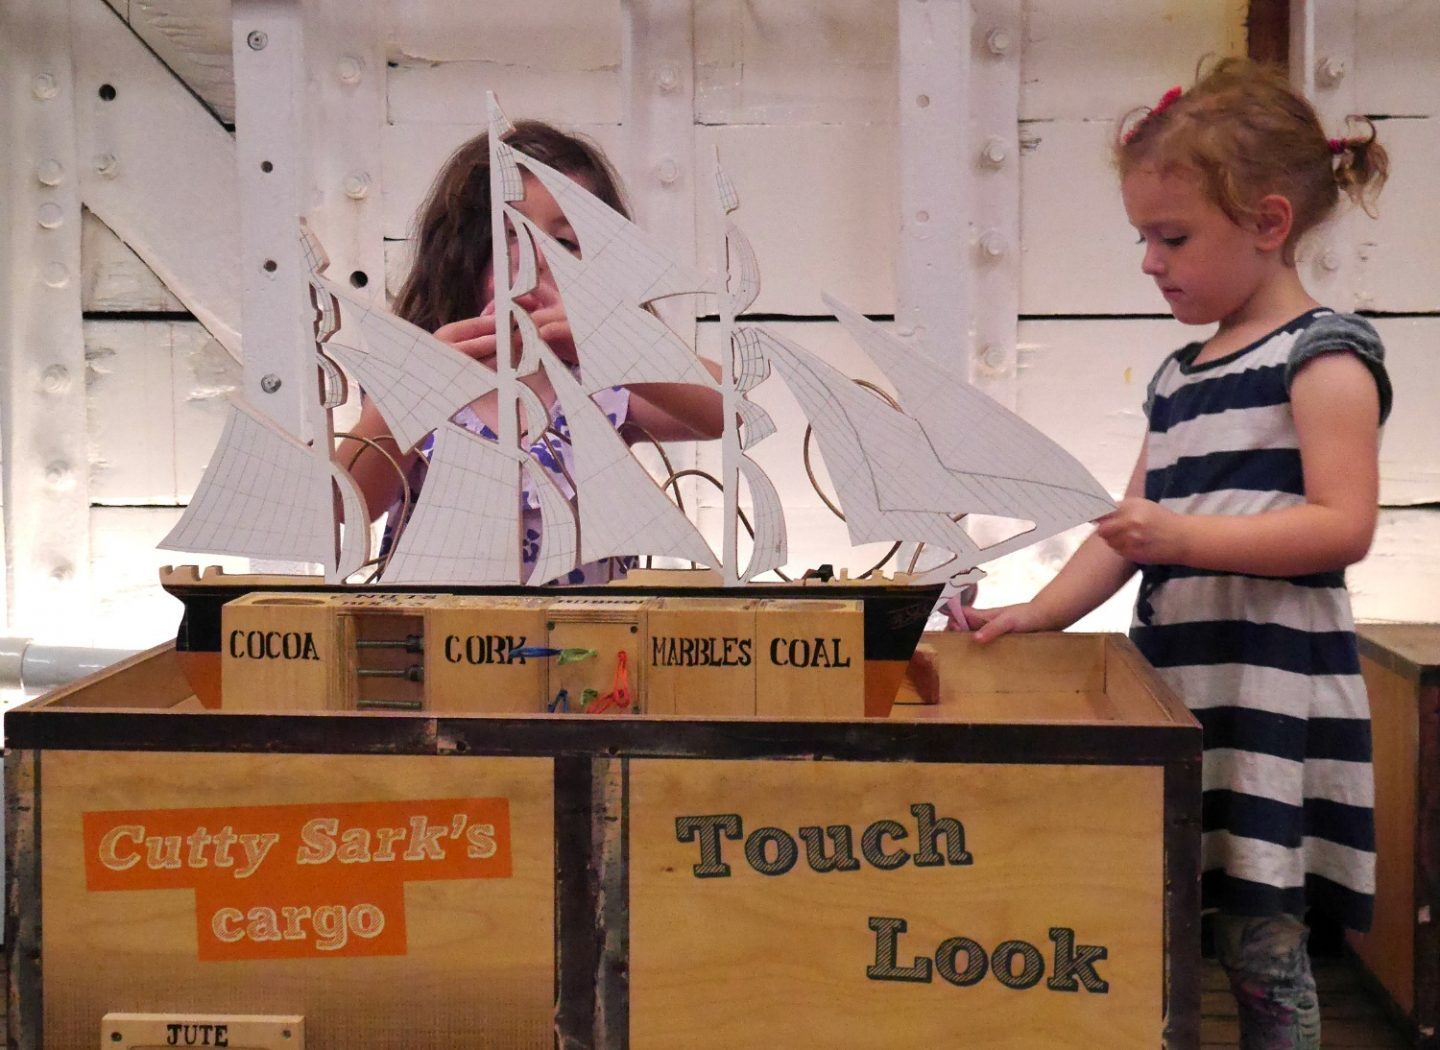 Cutty Sark review - interactive exhibitions for children